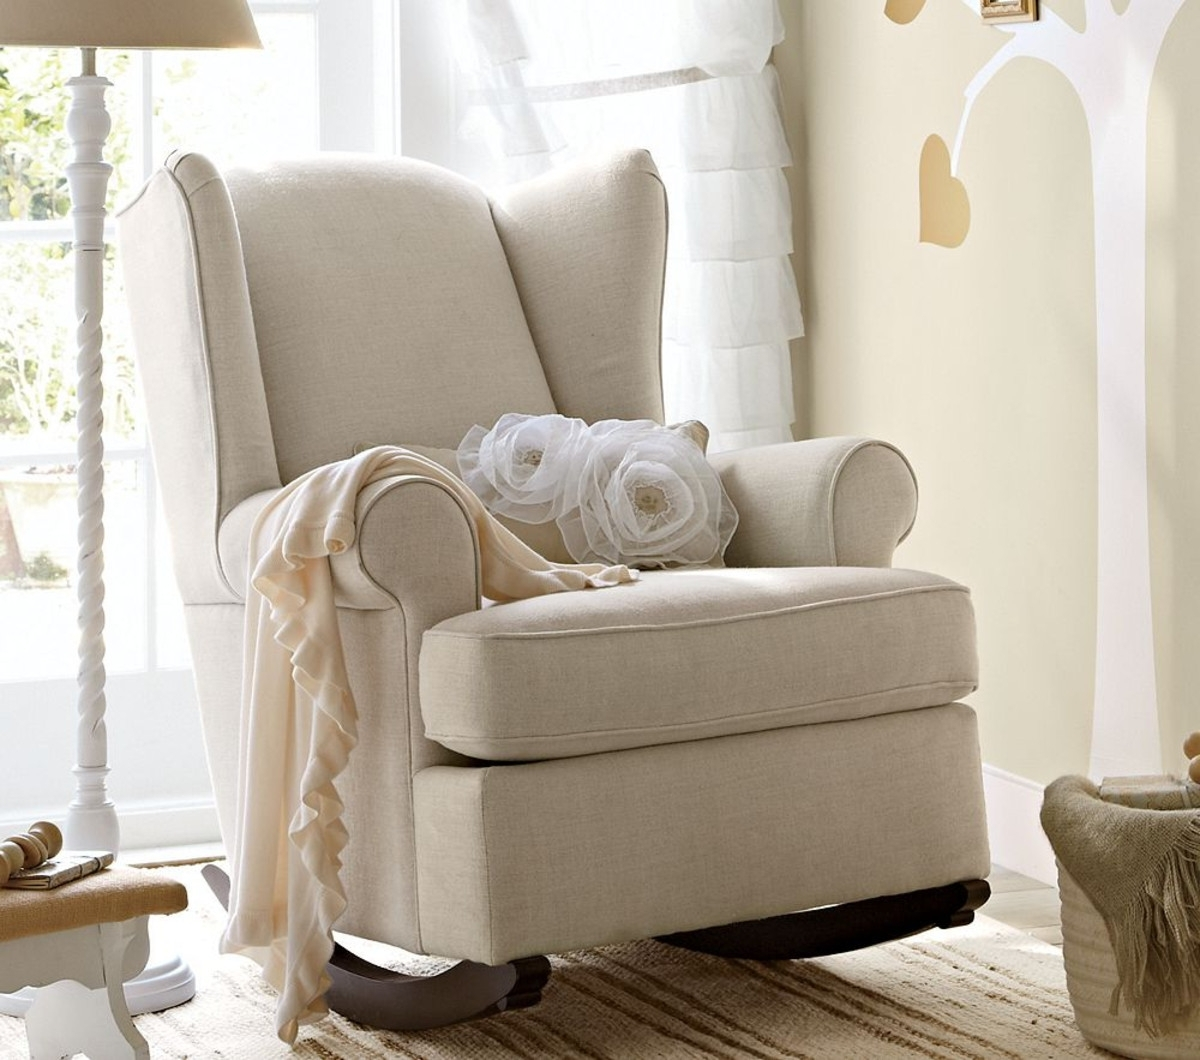 2017 Rocking Chairs For Nursing Throughout Ottomans : Cheap Rocking Chairs For Nursery Gray Glider Baby (View 10 of 15)